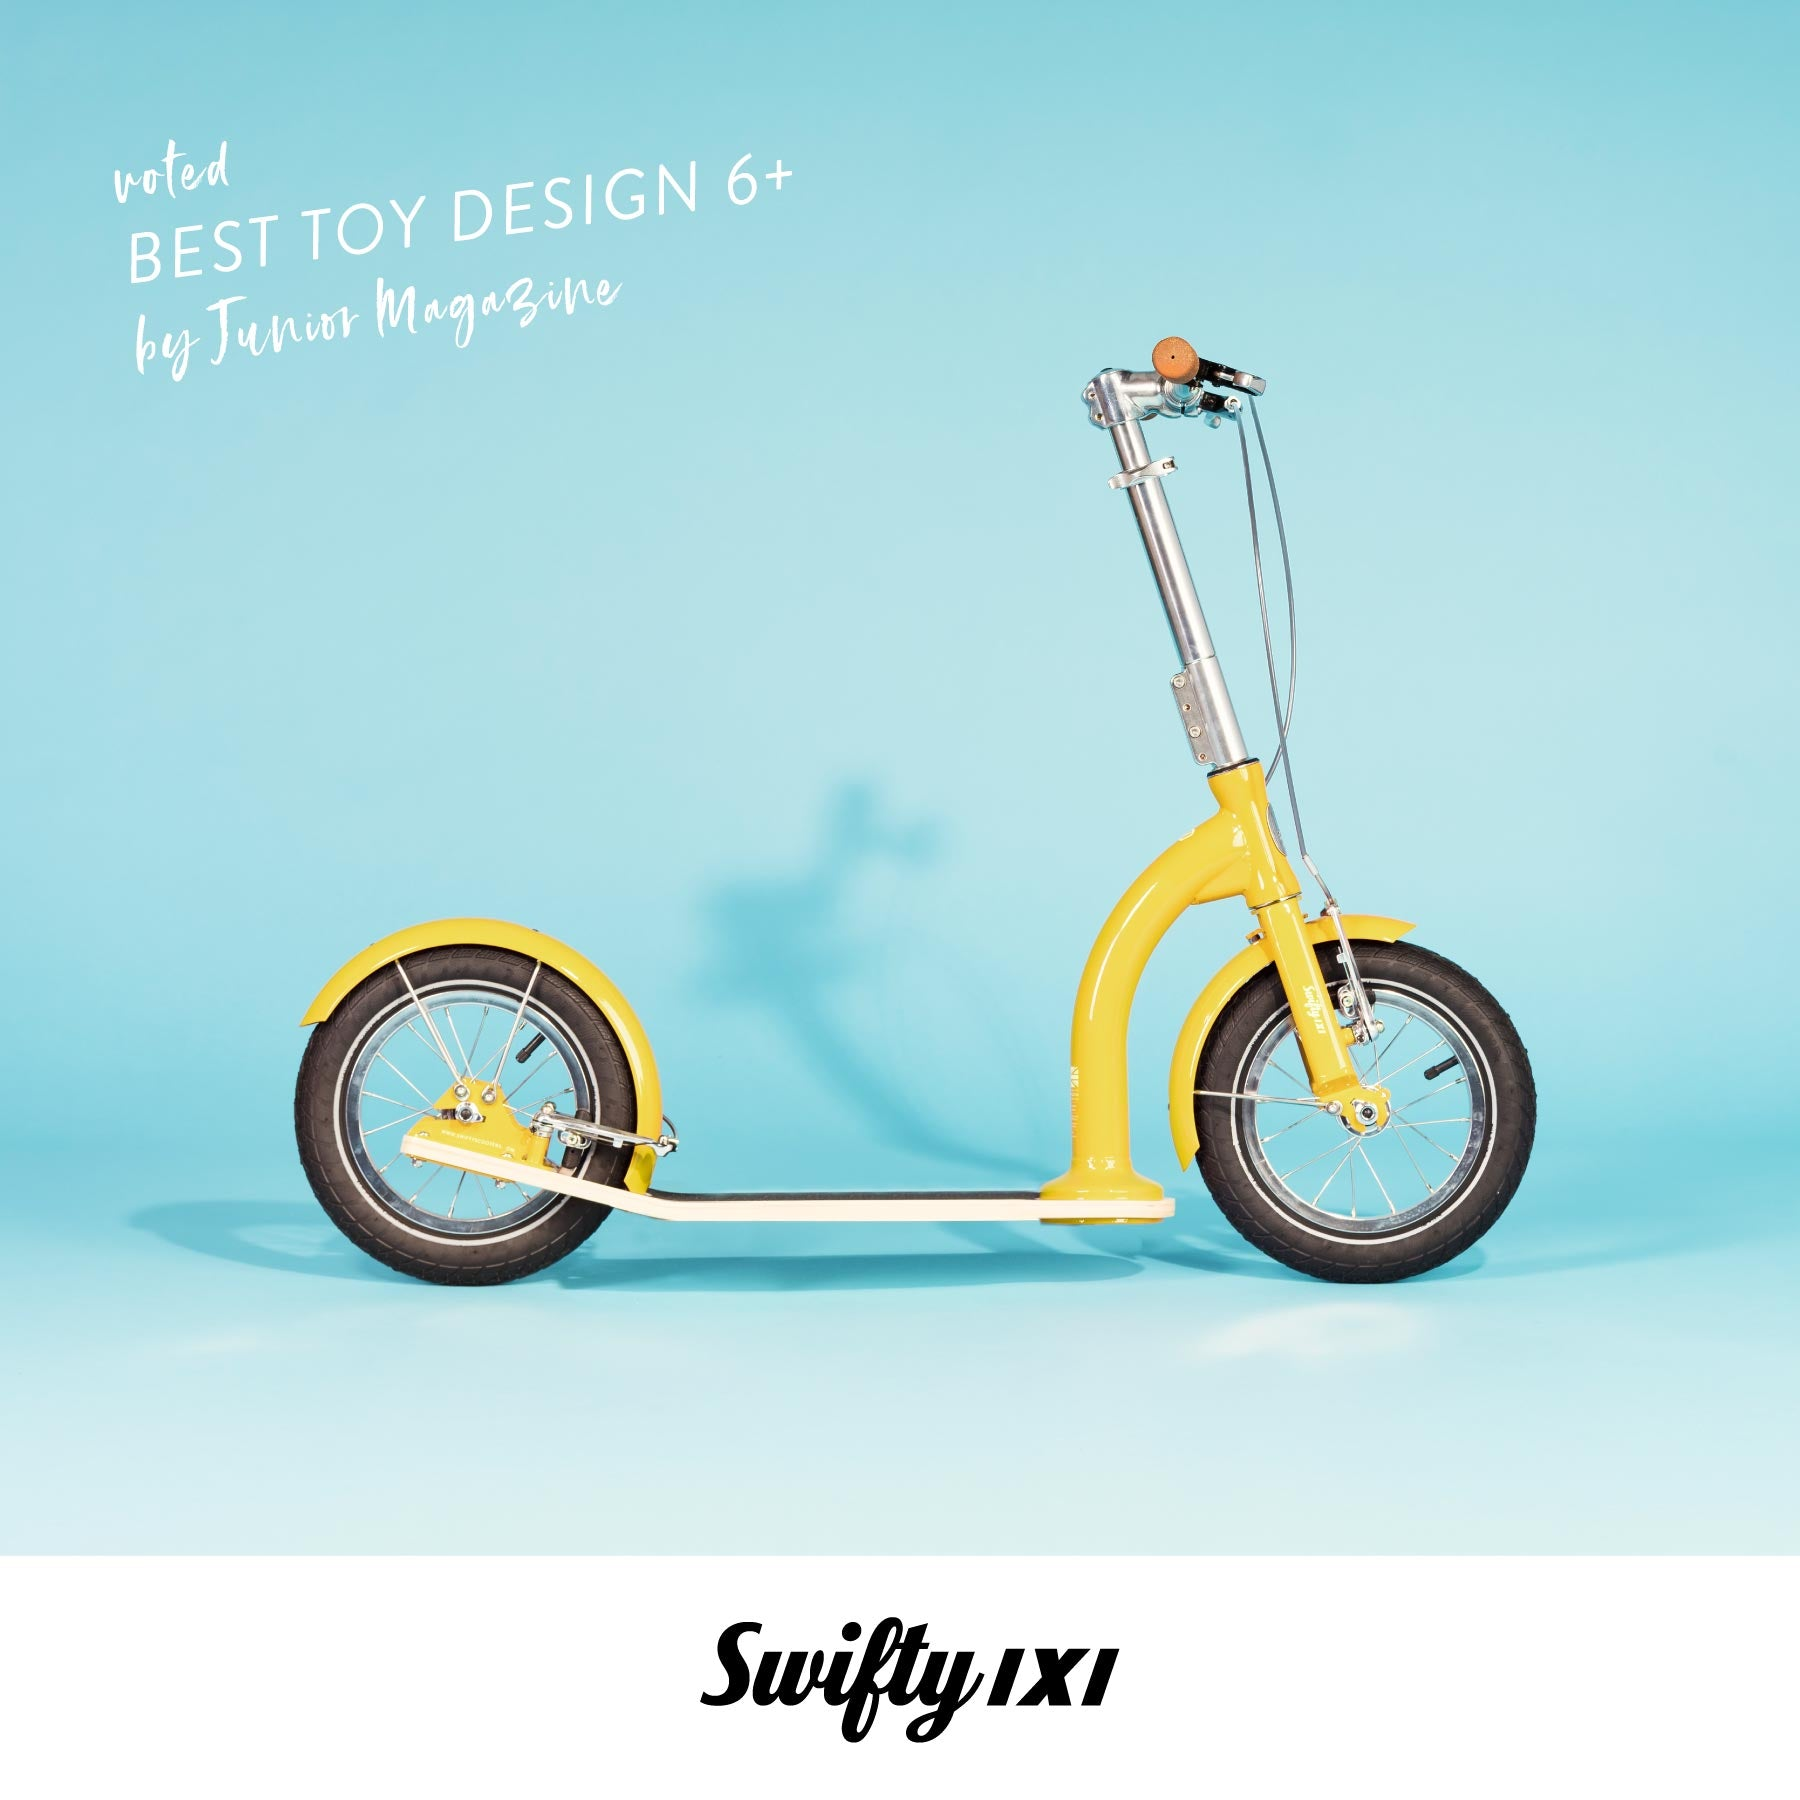 swifty scooters, kids scooter, best scooter for kids, kids scooter with big wheels, childrens scooter